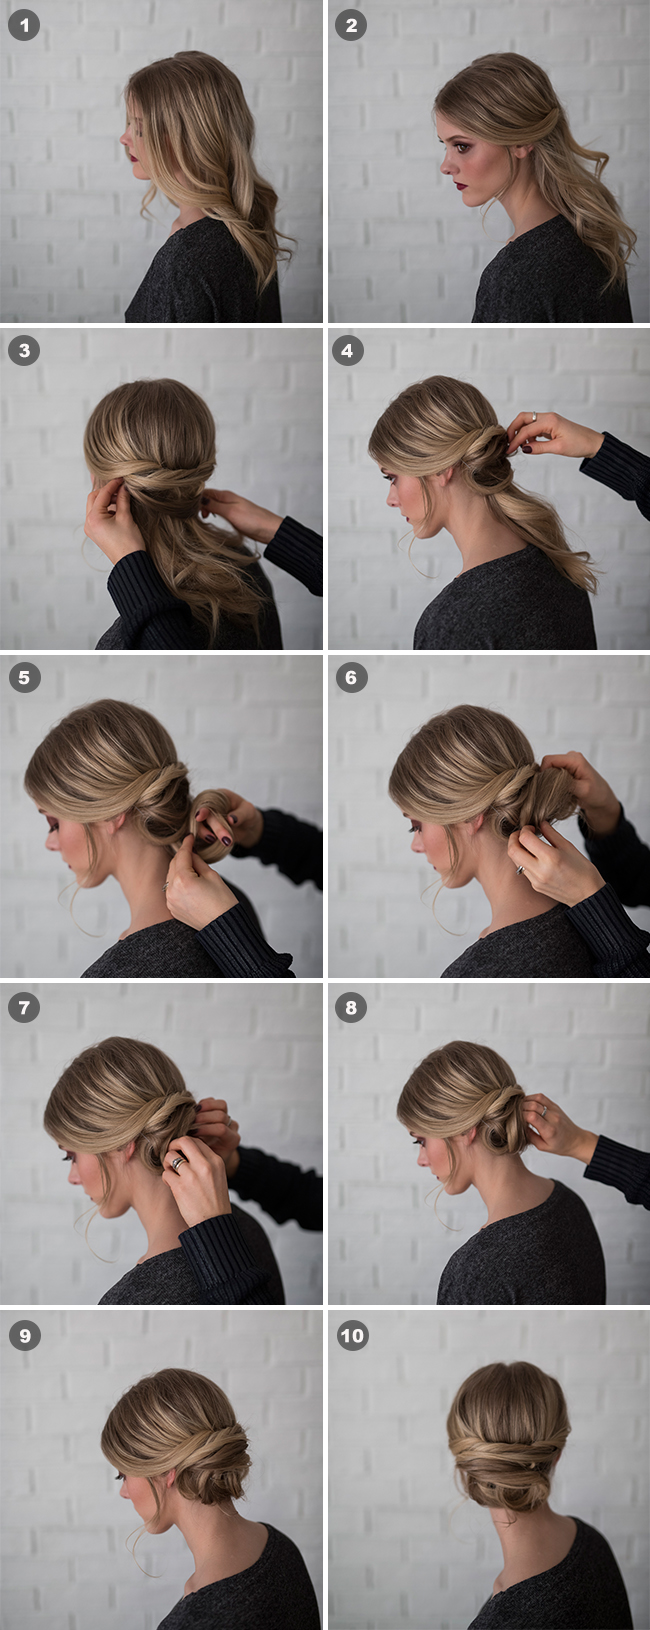 hair tutorial1